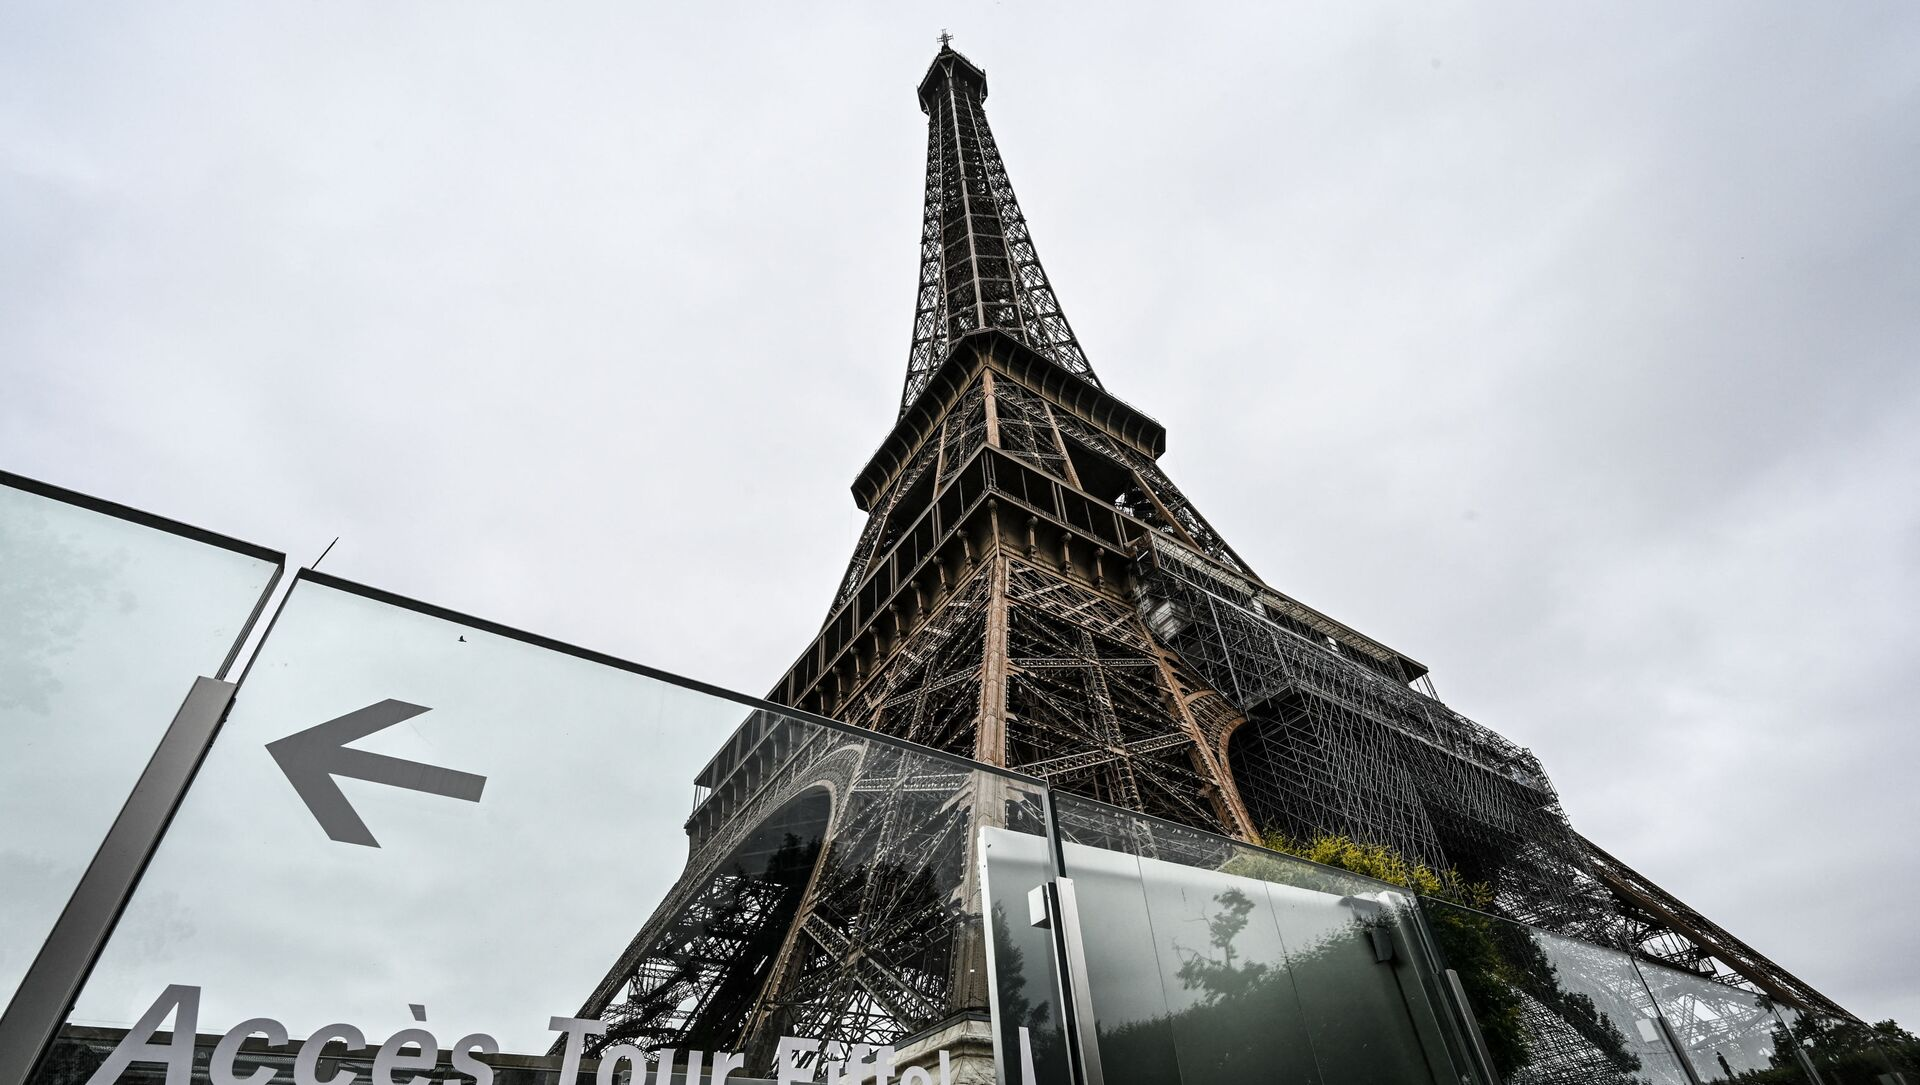 This picture taken on July 16, 2021, in Paris shows the Eiffel Tower and its protective wall. - The Eiffel Tower reopened to visitors on July 16, 2021, after nine months of shutdown caused by the Covid pandemic. Up to 13,000 people per day will be allowed to take the elevators to the top and take in the views over the French capital, down from 25,000 in the pre-Covid era.  - Sputnik International, 1920, 16.07.2021